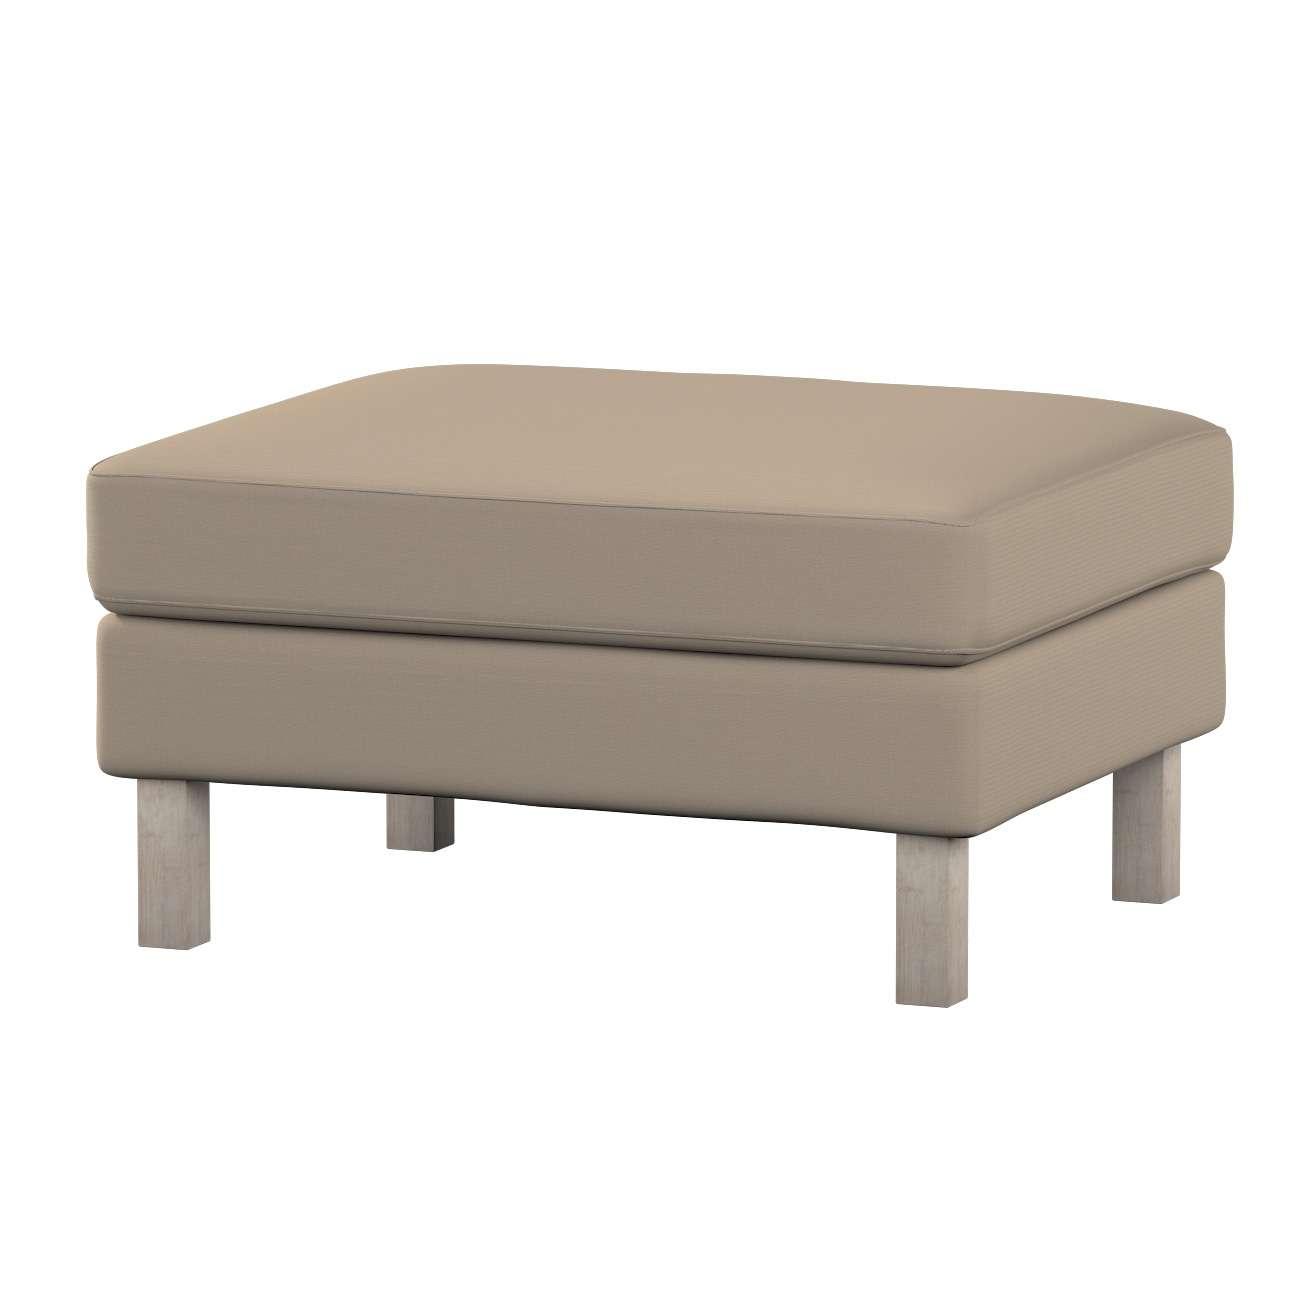 Karlstad footstool cover Karlstad footstool cover in collection Cotton Panama, fabric: 702-28